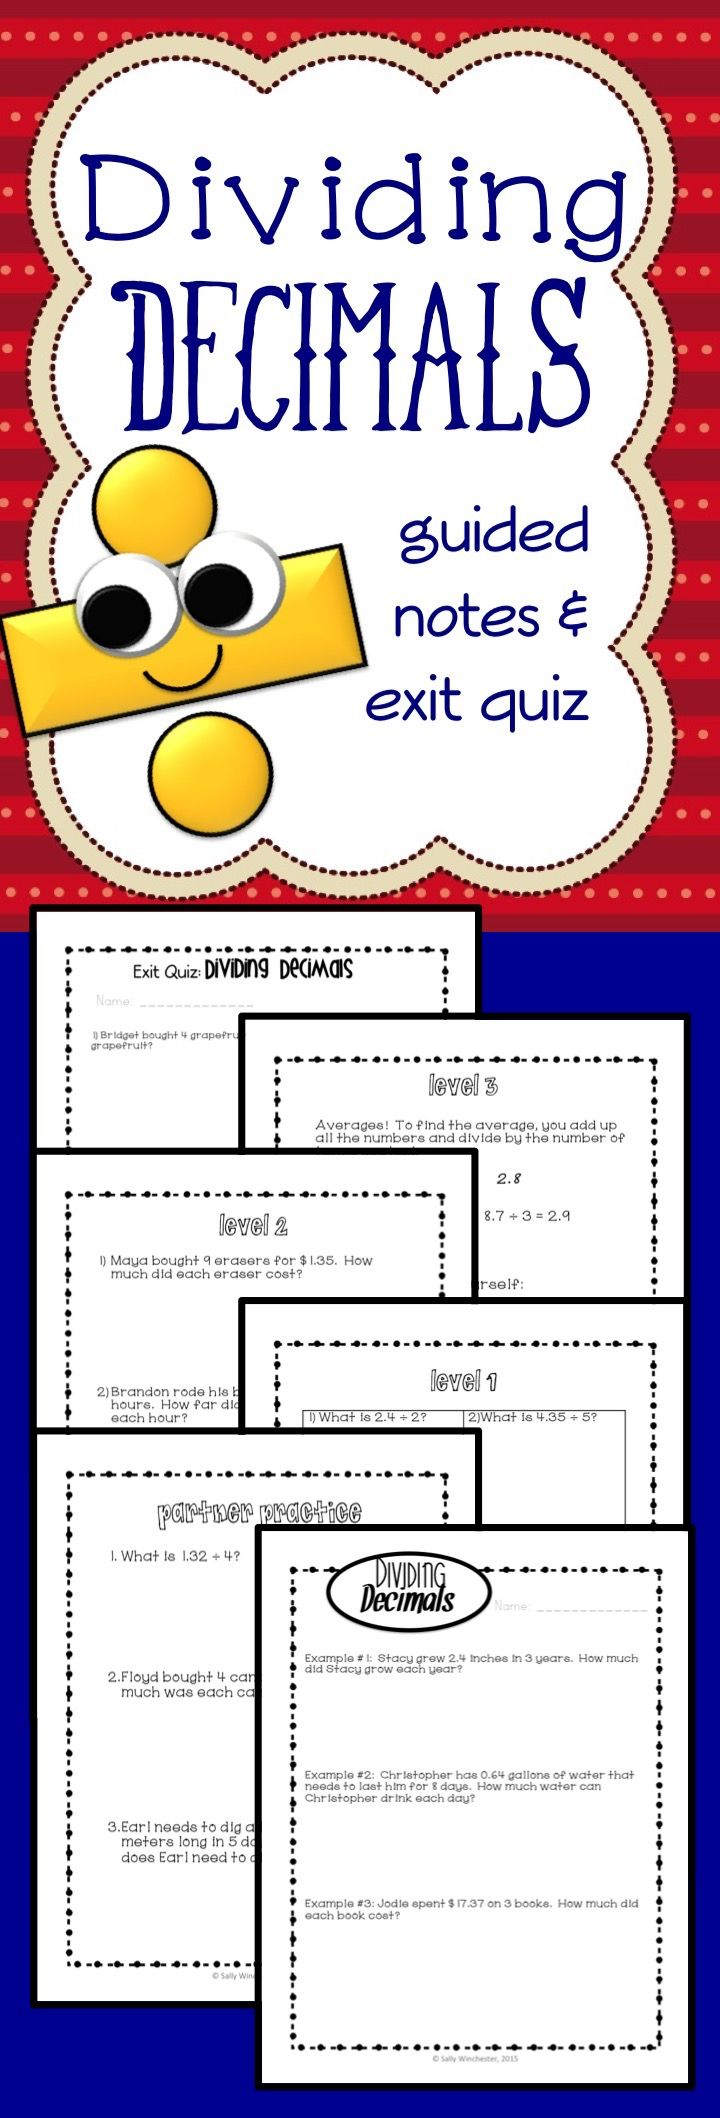 Worksheet How To Divide Decimals By Hand 1000 ideas about dividing decimals on pinterest 5th grade math great lesson by one digit whole numbers 5 nbt